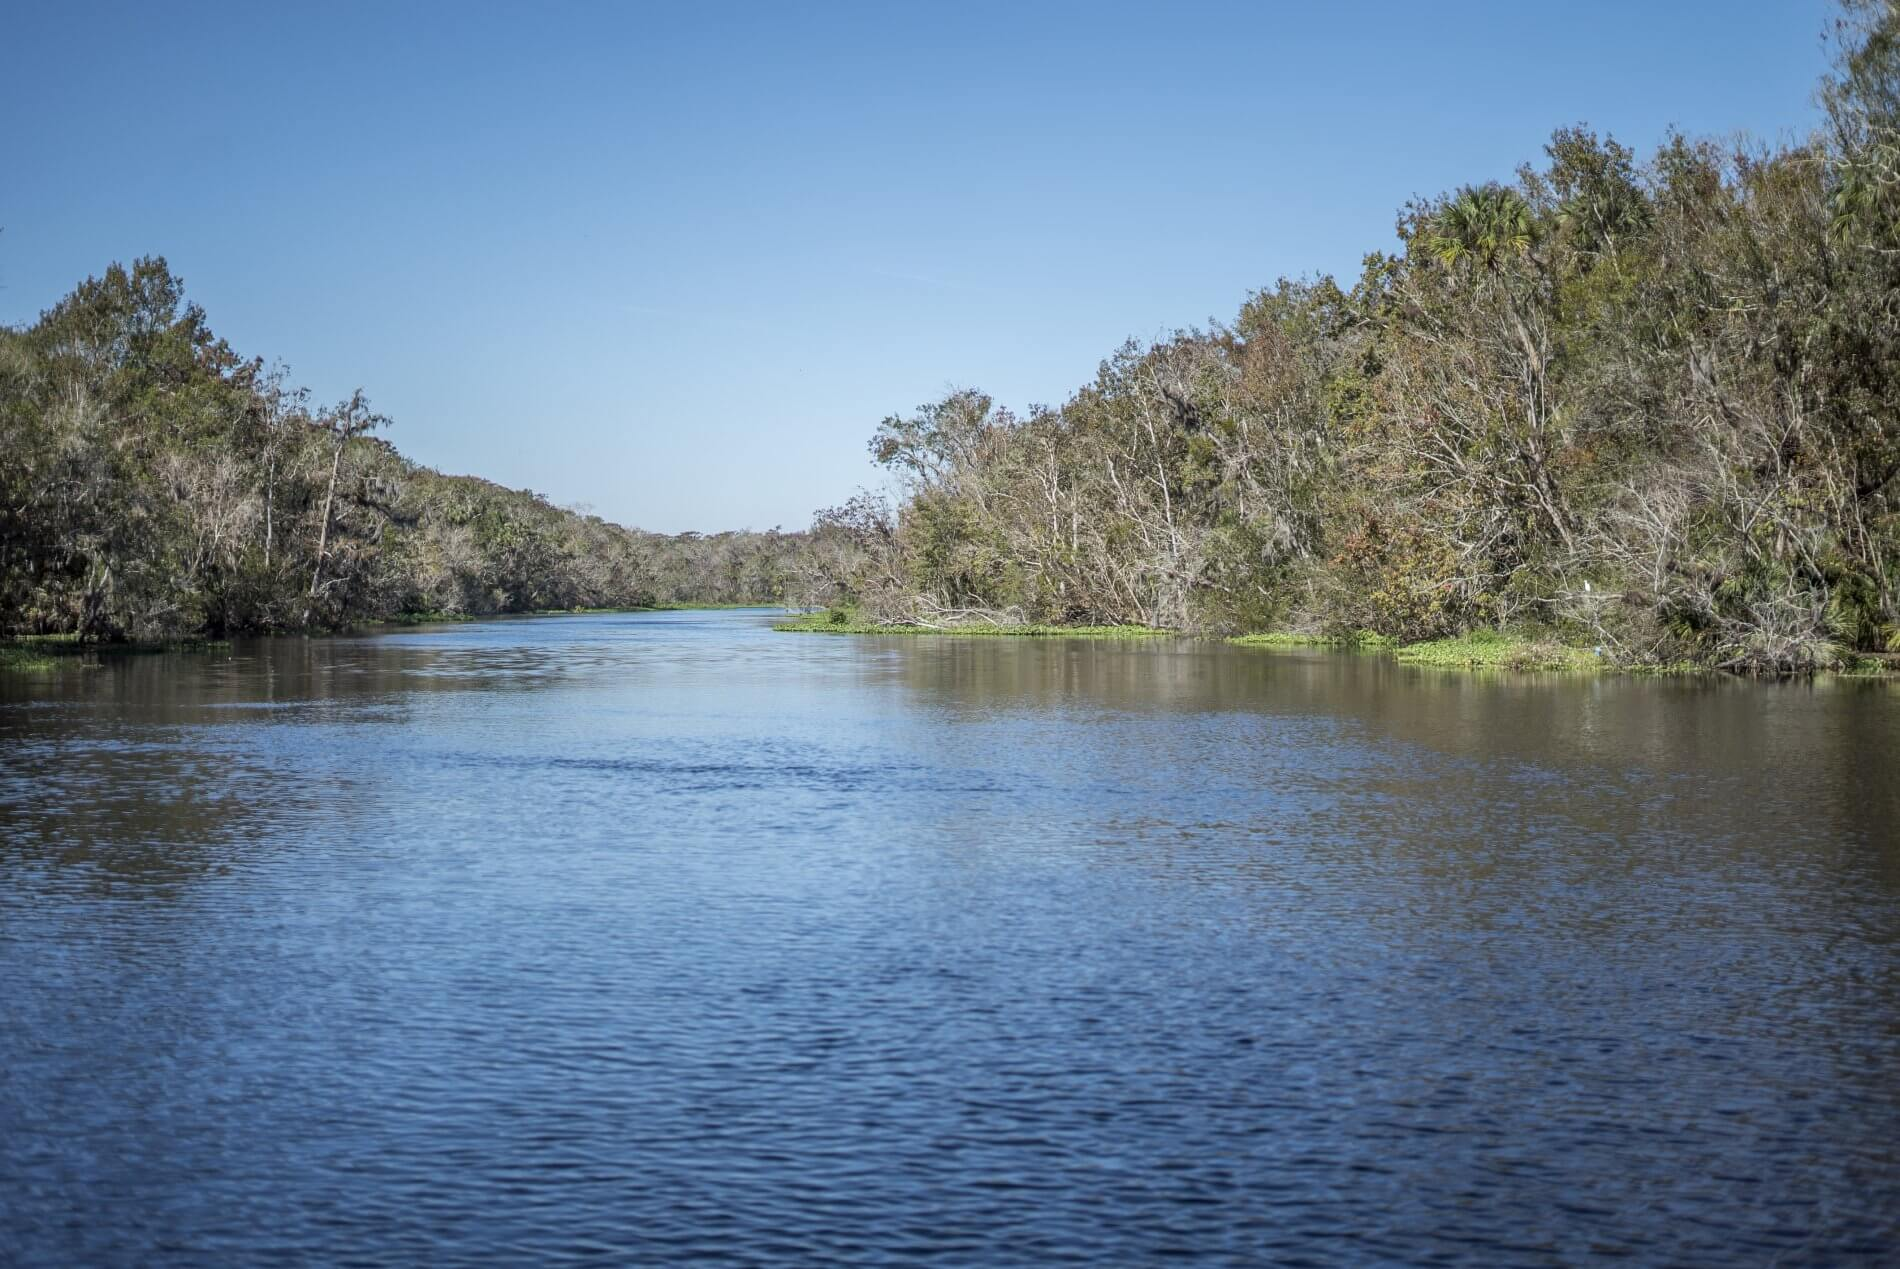 Landscape image of the St. Johns River with oak trees on both sides of the river.